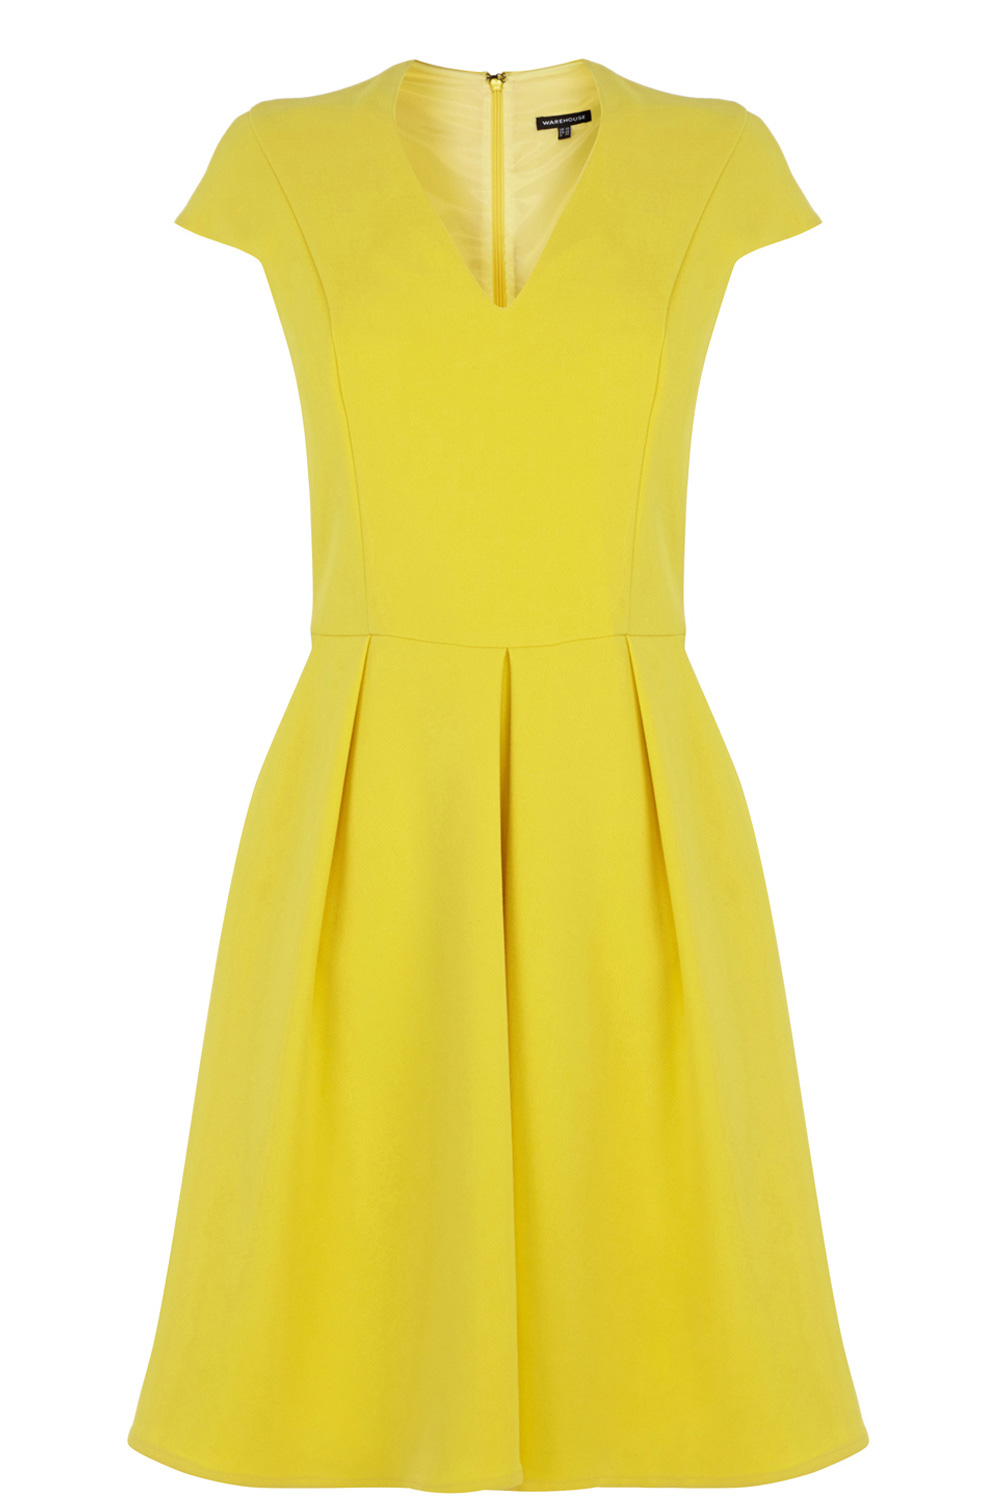 Yellow dress buy trends for fall dresses ask for Yellow wedding dresses for sale